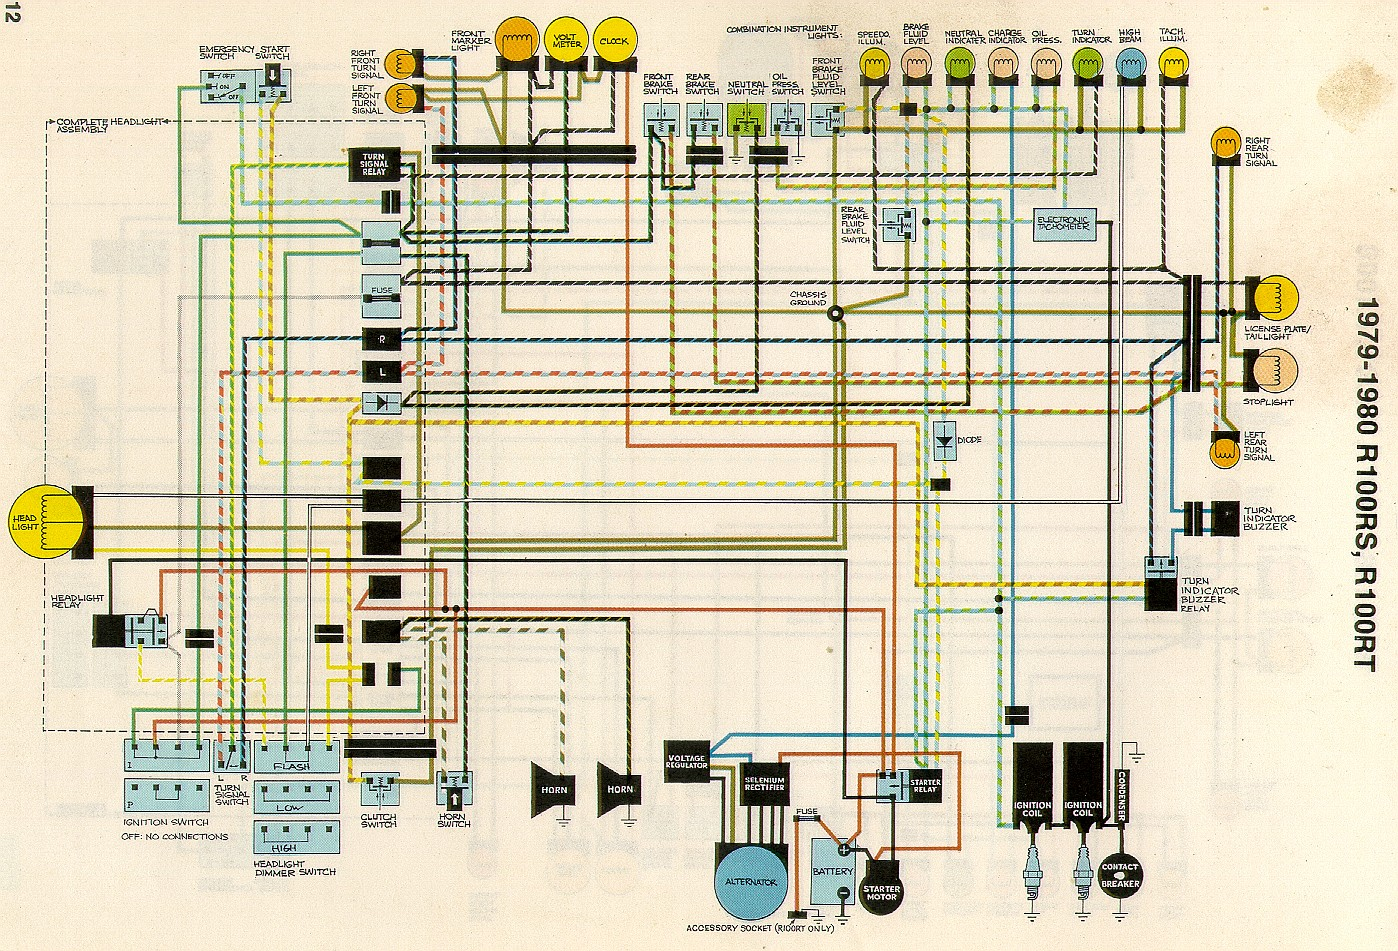 79rs 5 united articles wiring diagrams bmw r100rs gauge wiring diagram at cos-gaming.co